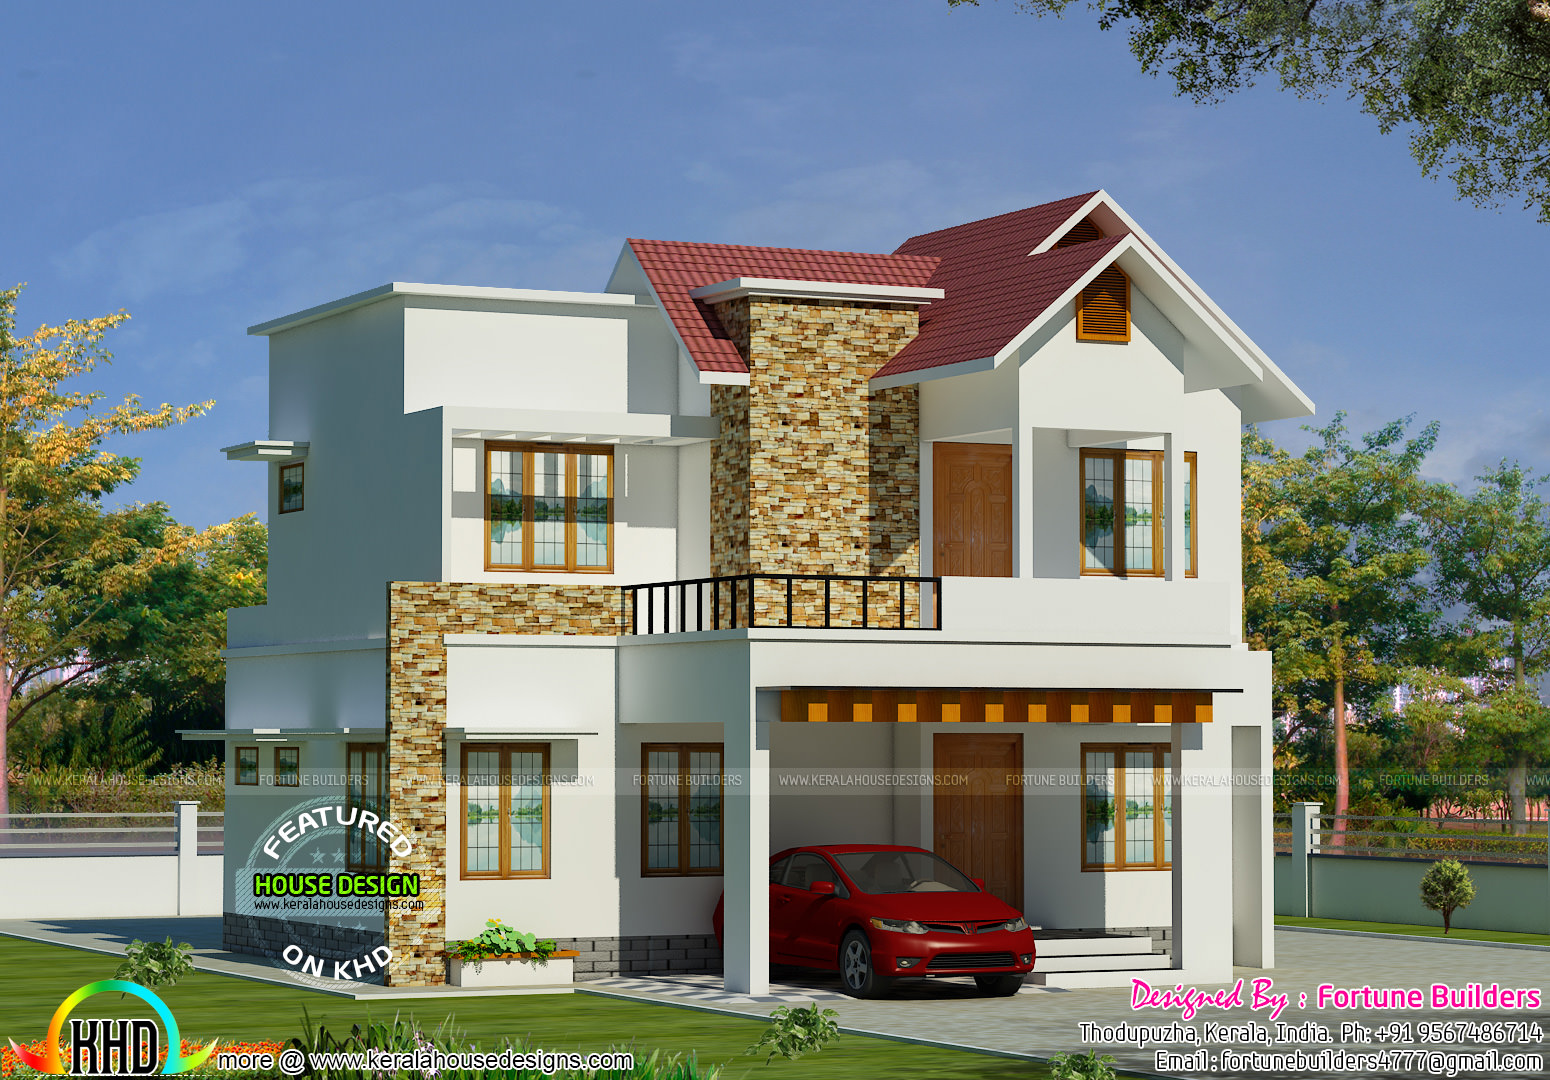 Cute Mixed Roof Villa By Fortune Builders Kerala Home Design And Floor Plans